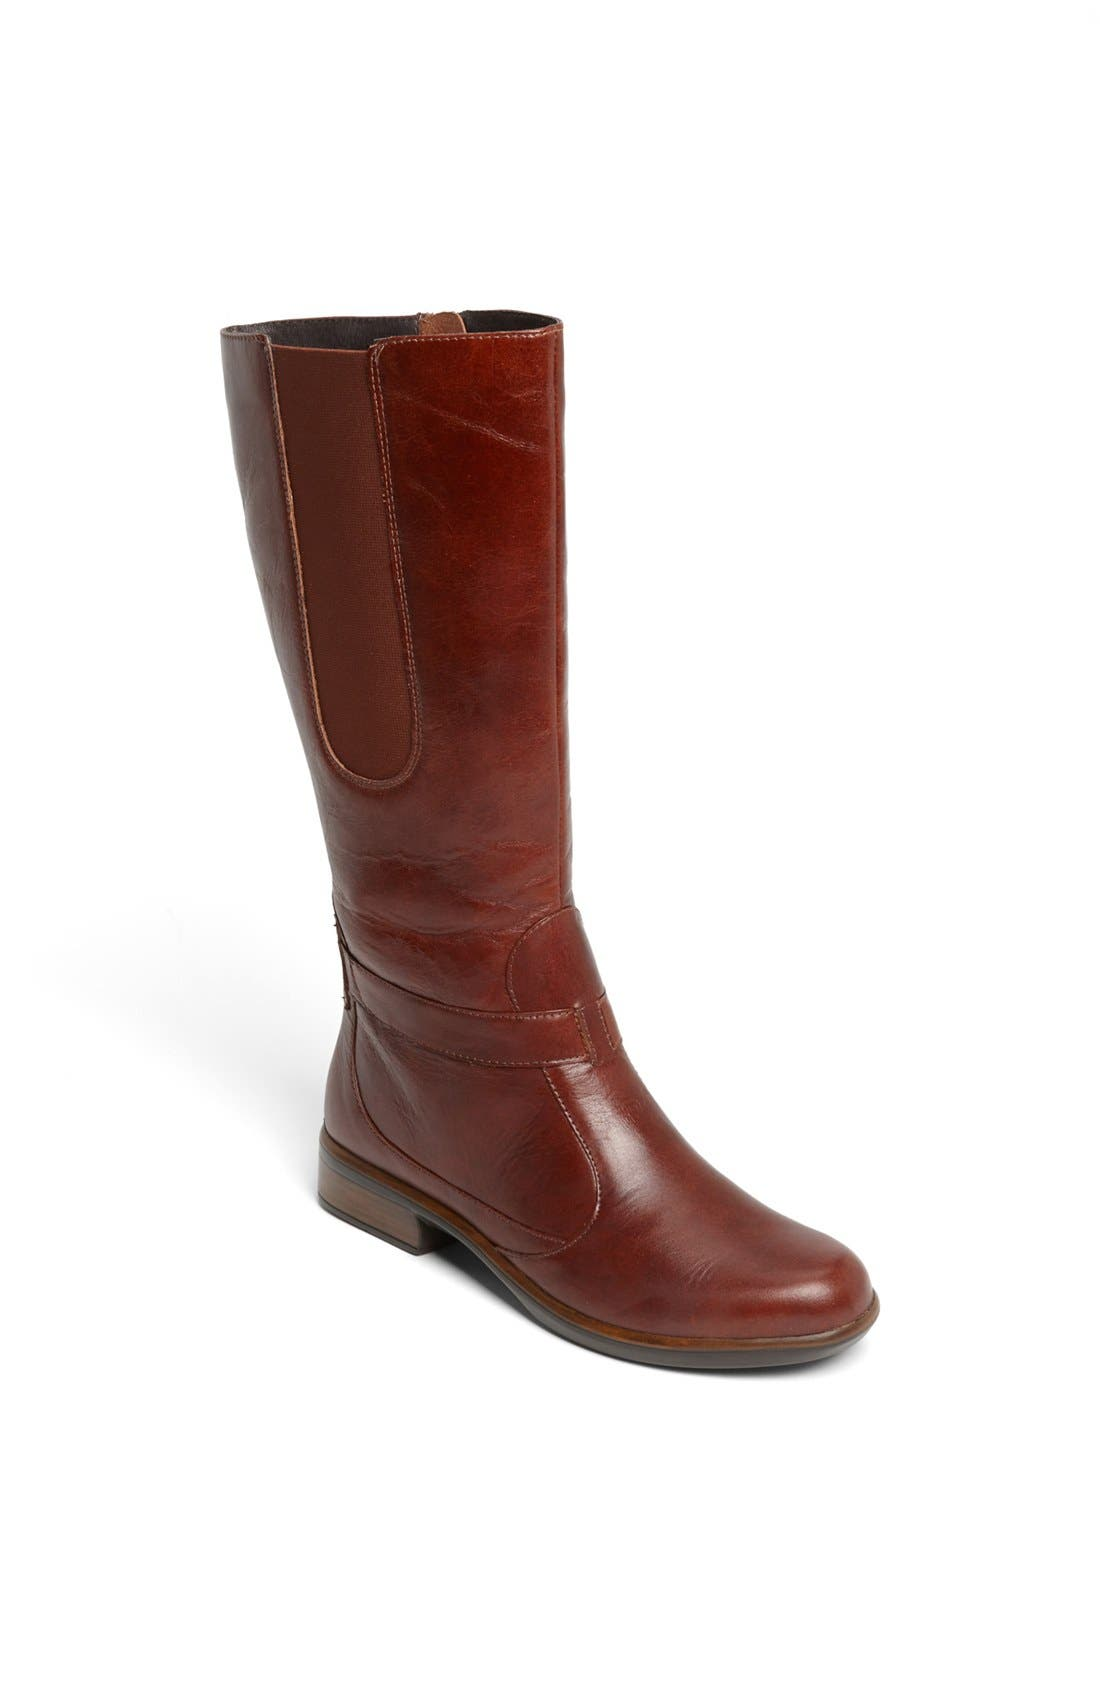 Alternate Image 1 Selected - Naot 'Viento' Boot